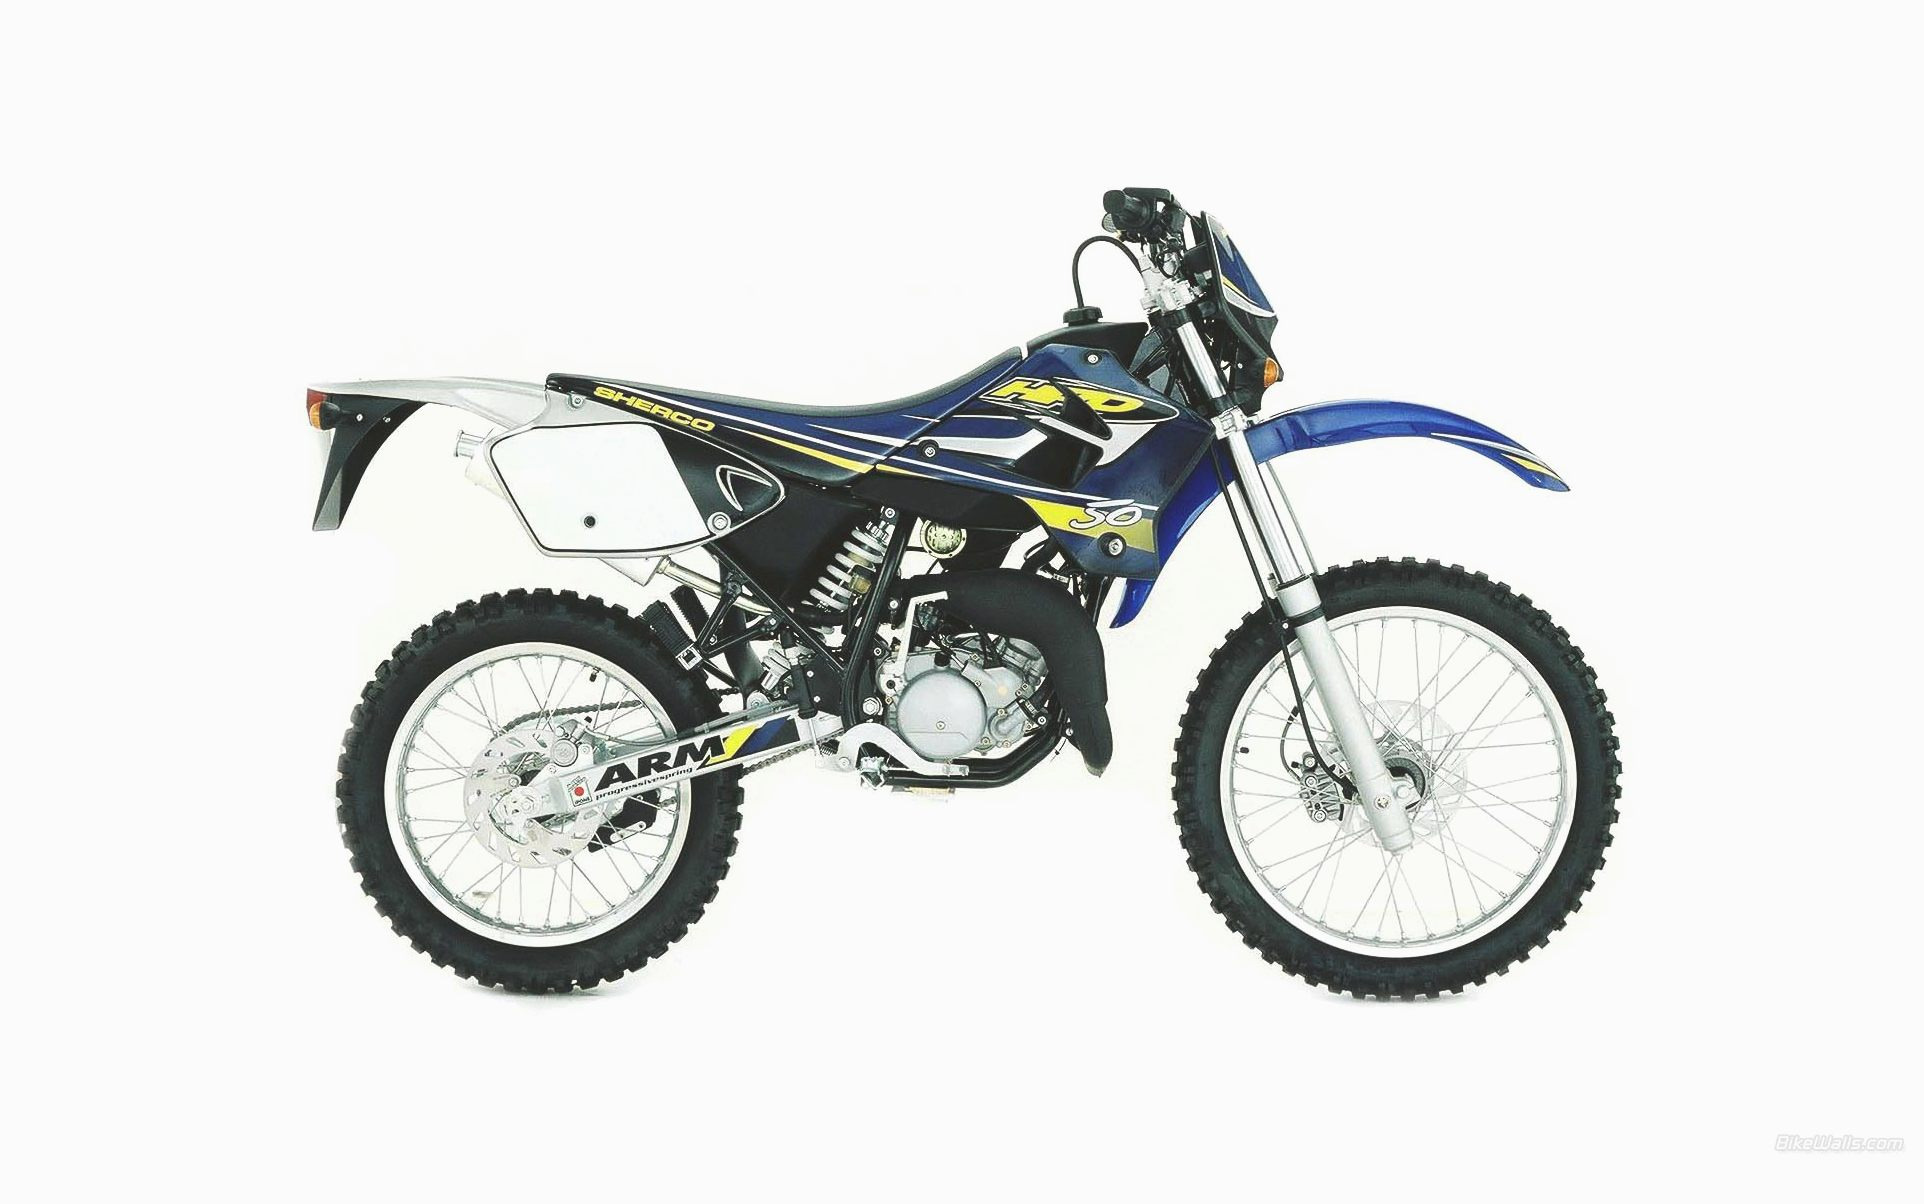 2004 Sherco Supermotard 50 cc #7